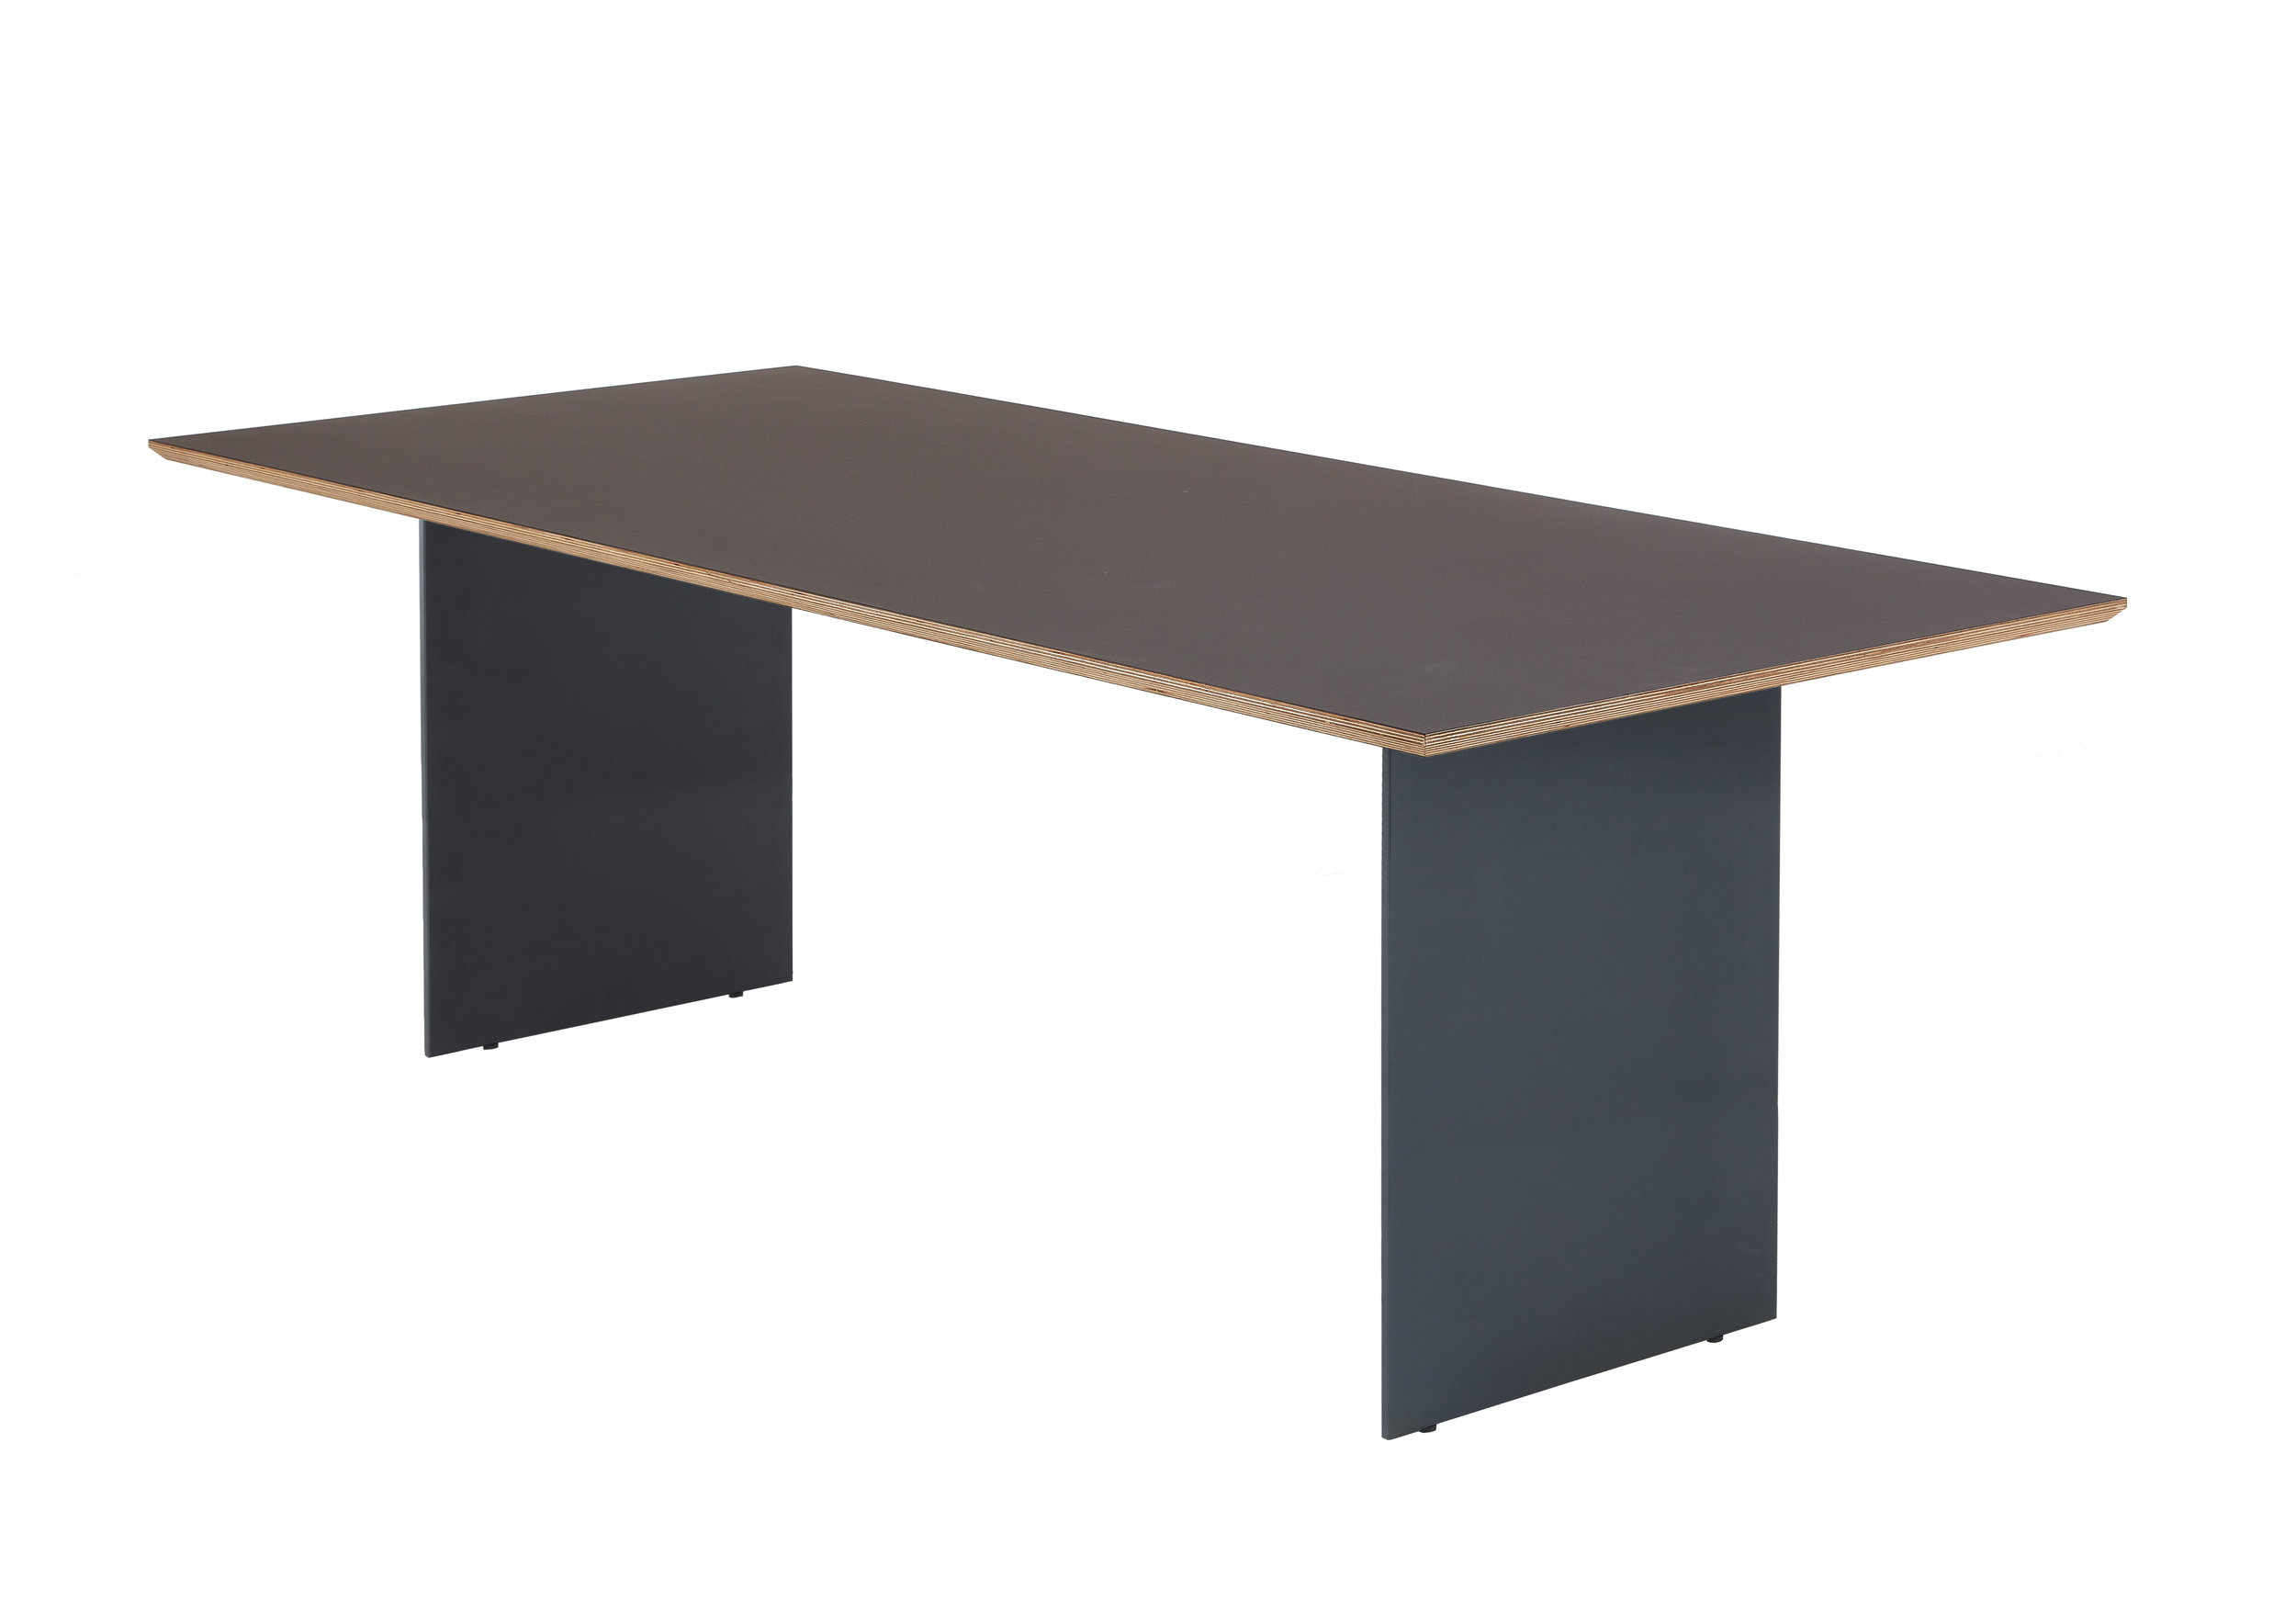 5824-18-Fenix-Table-LegS-Top4.jpg